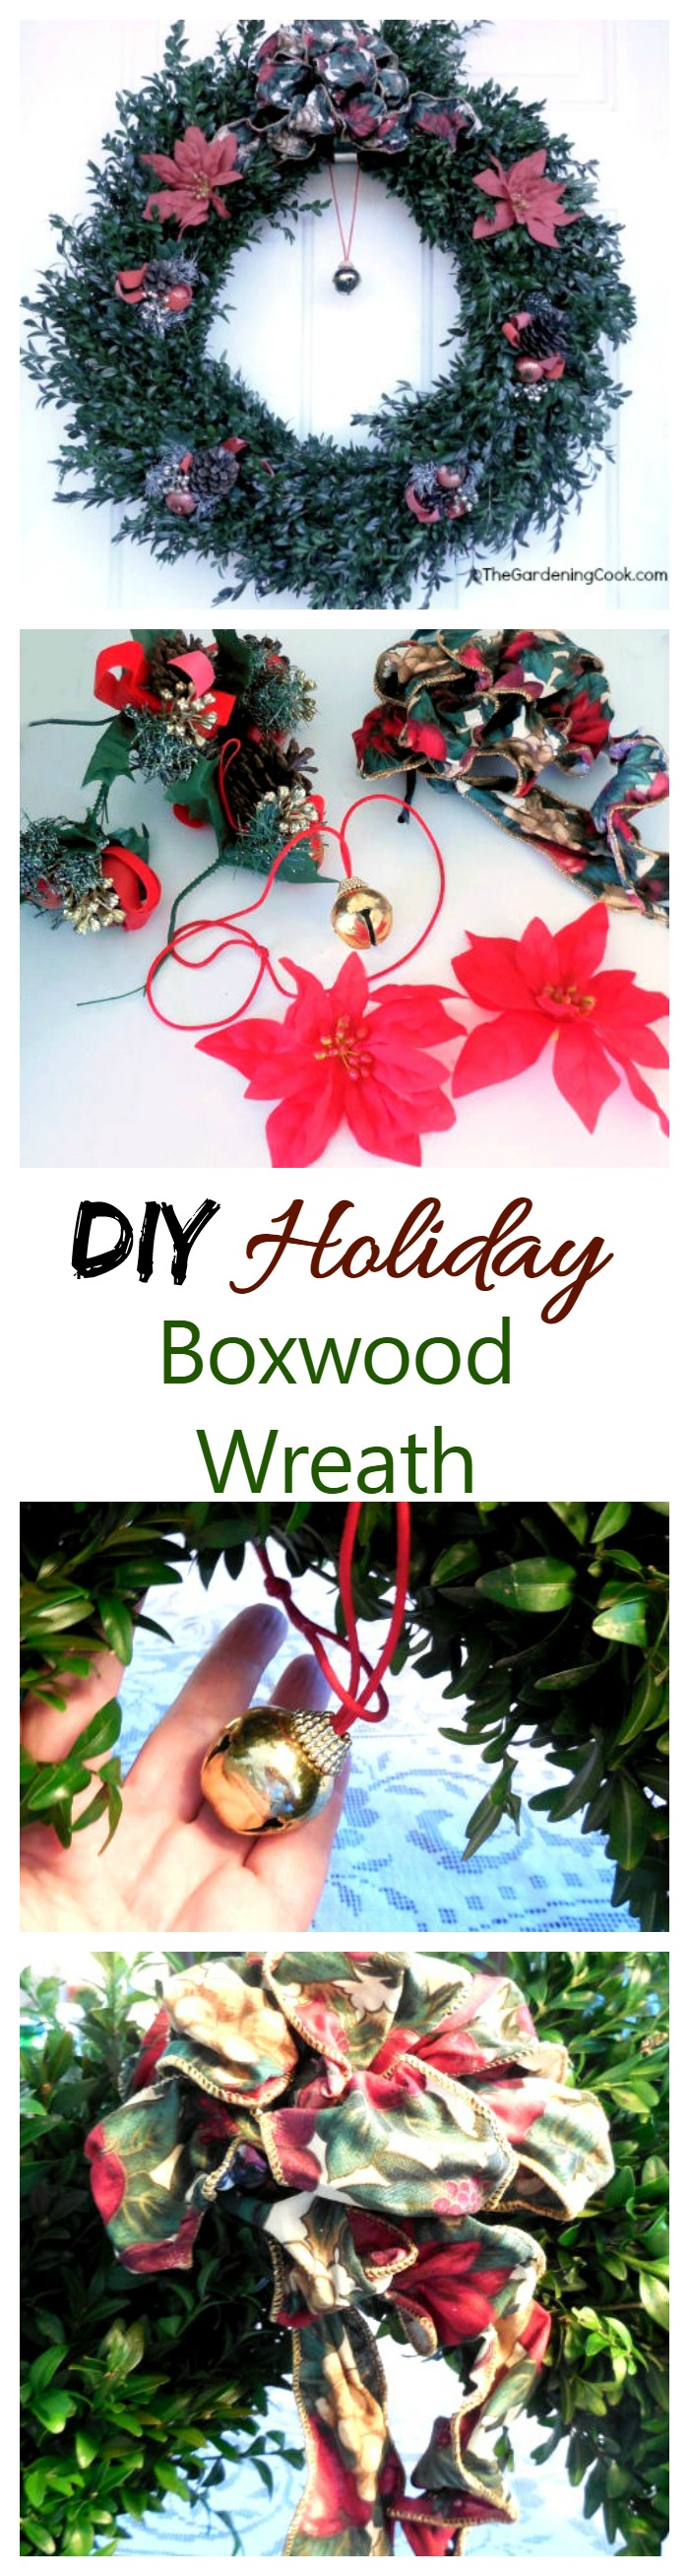 This DIY boxwood Christmas wreath is a nice change from a traditional fir type of wreath. See how to make it on thegardeningcook.com